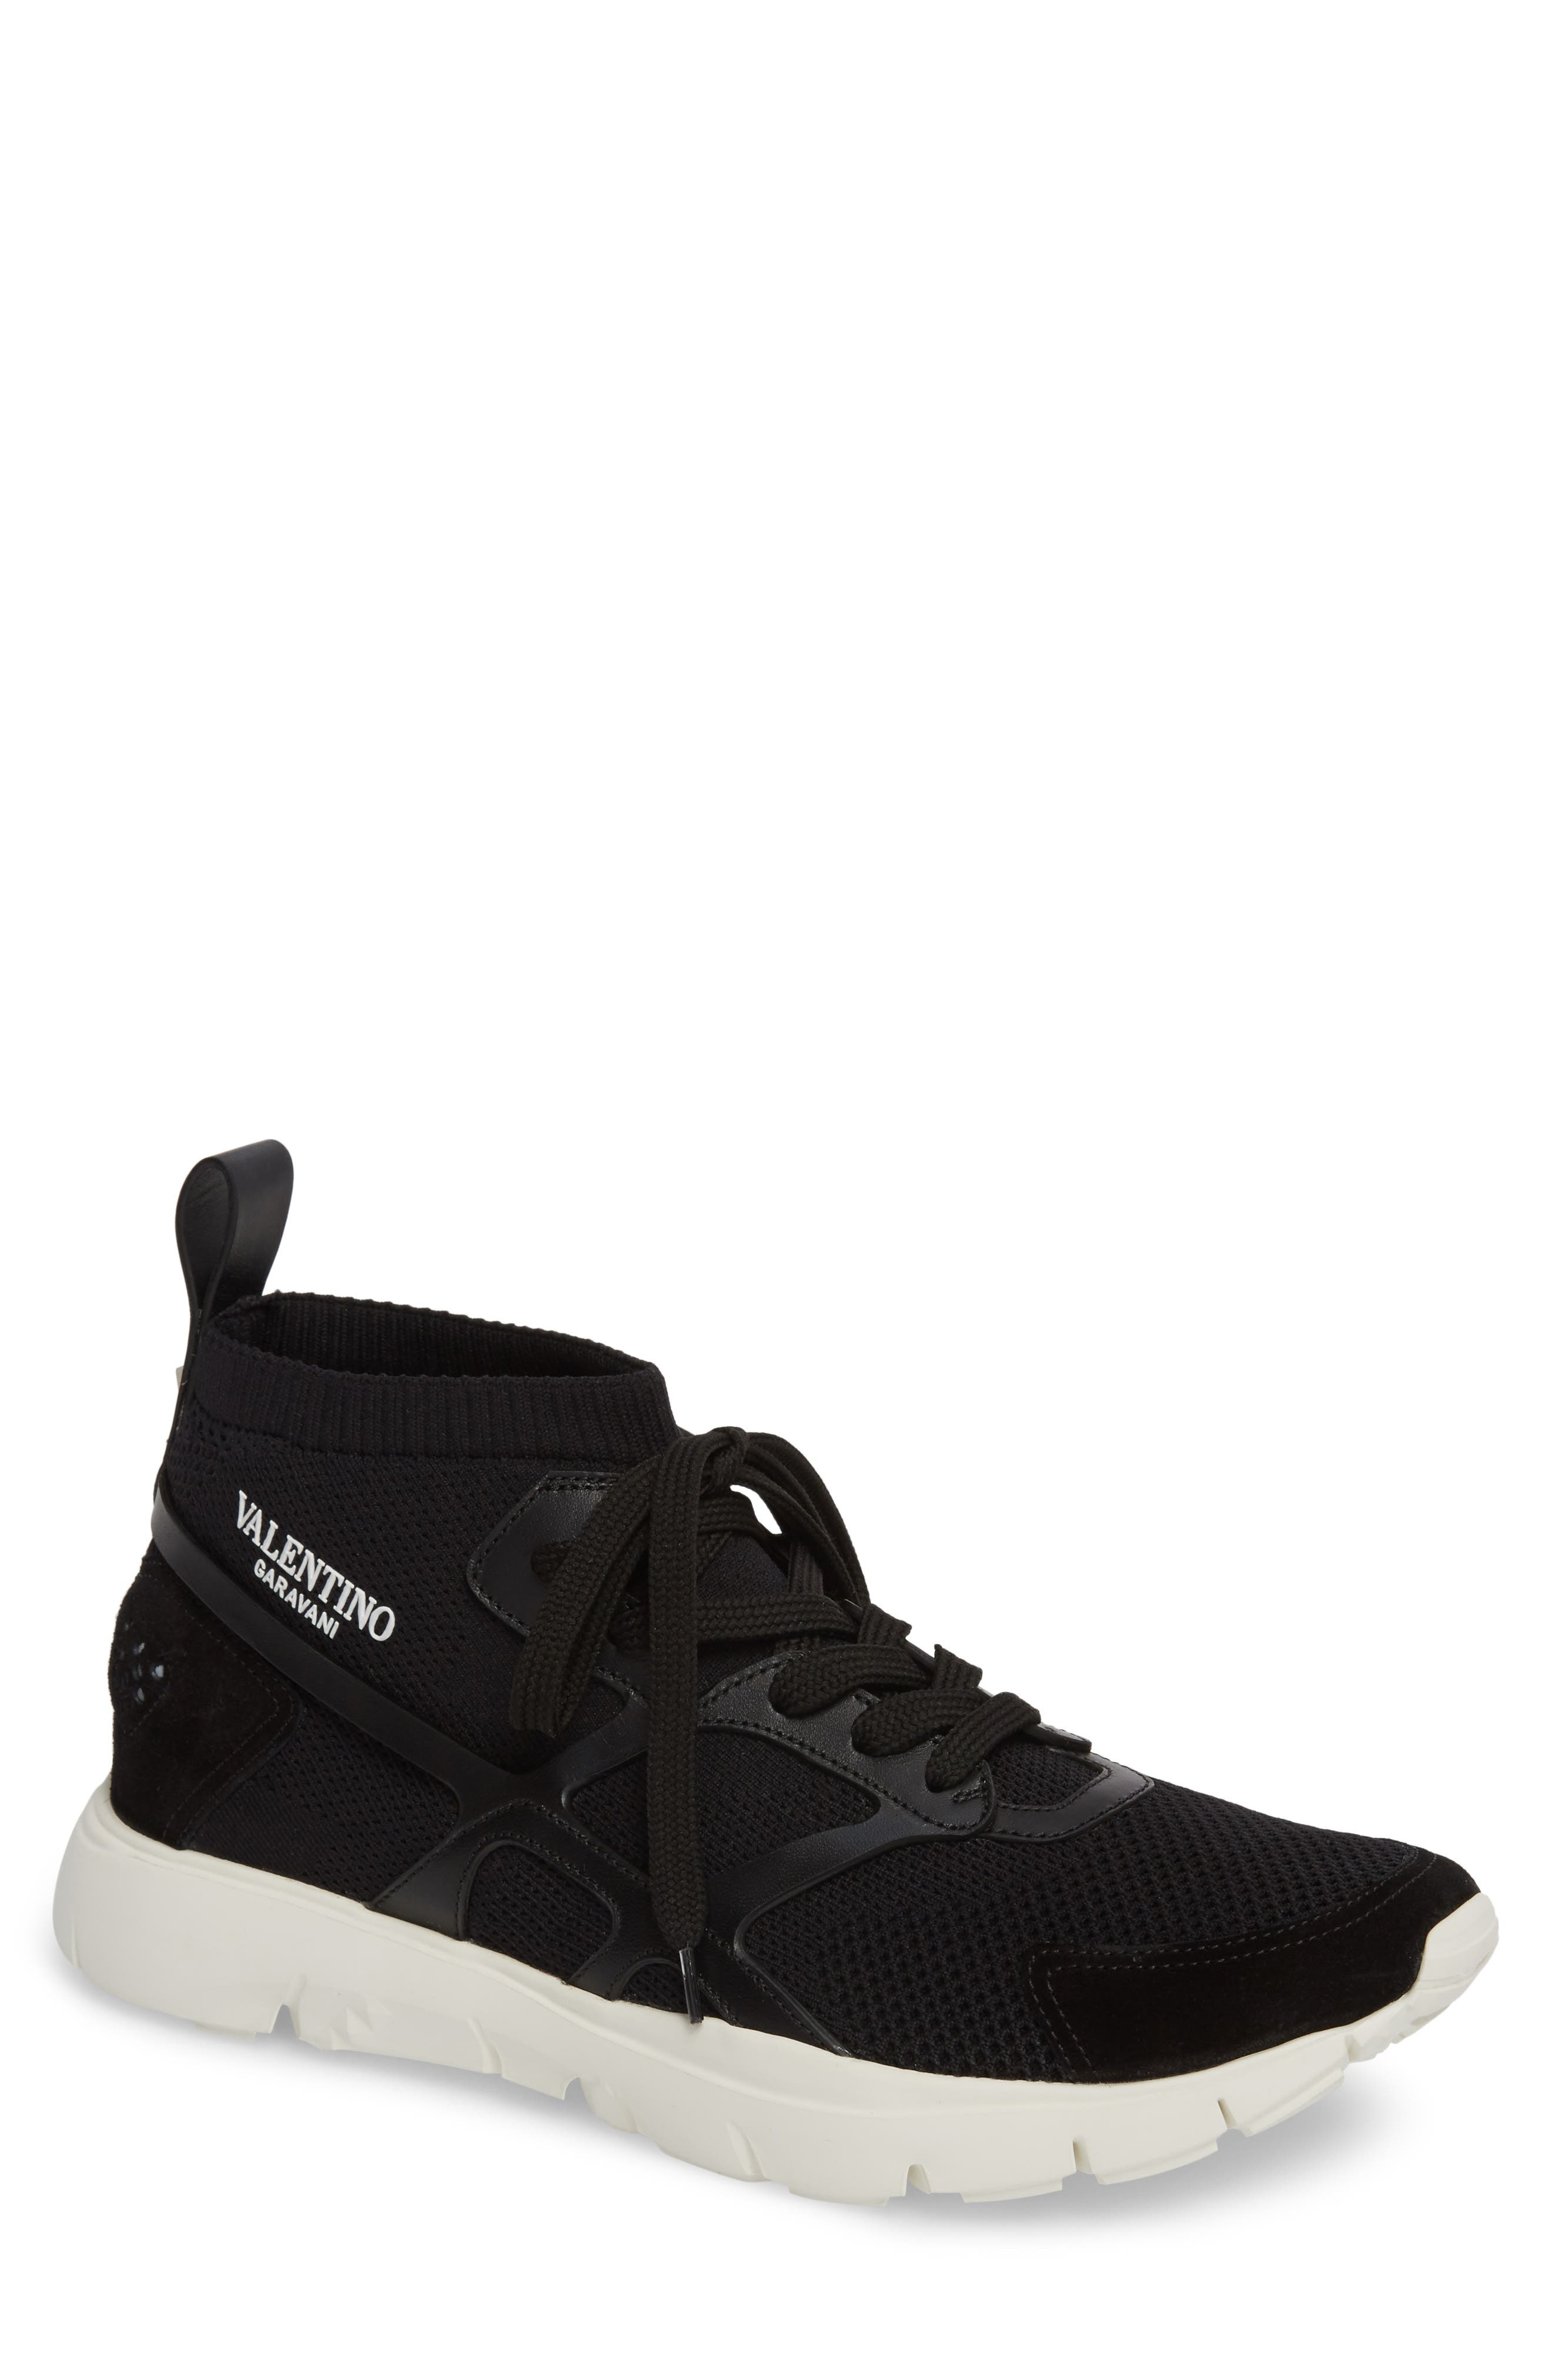 Sound High Sneaker,                             Main thumbnail 1, color,                             NERO